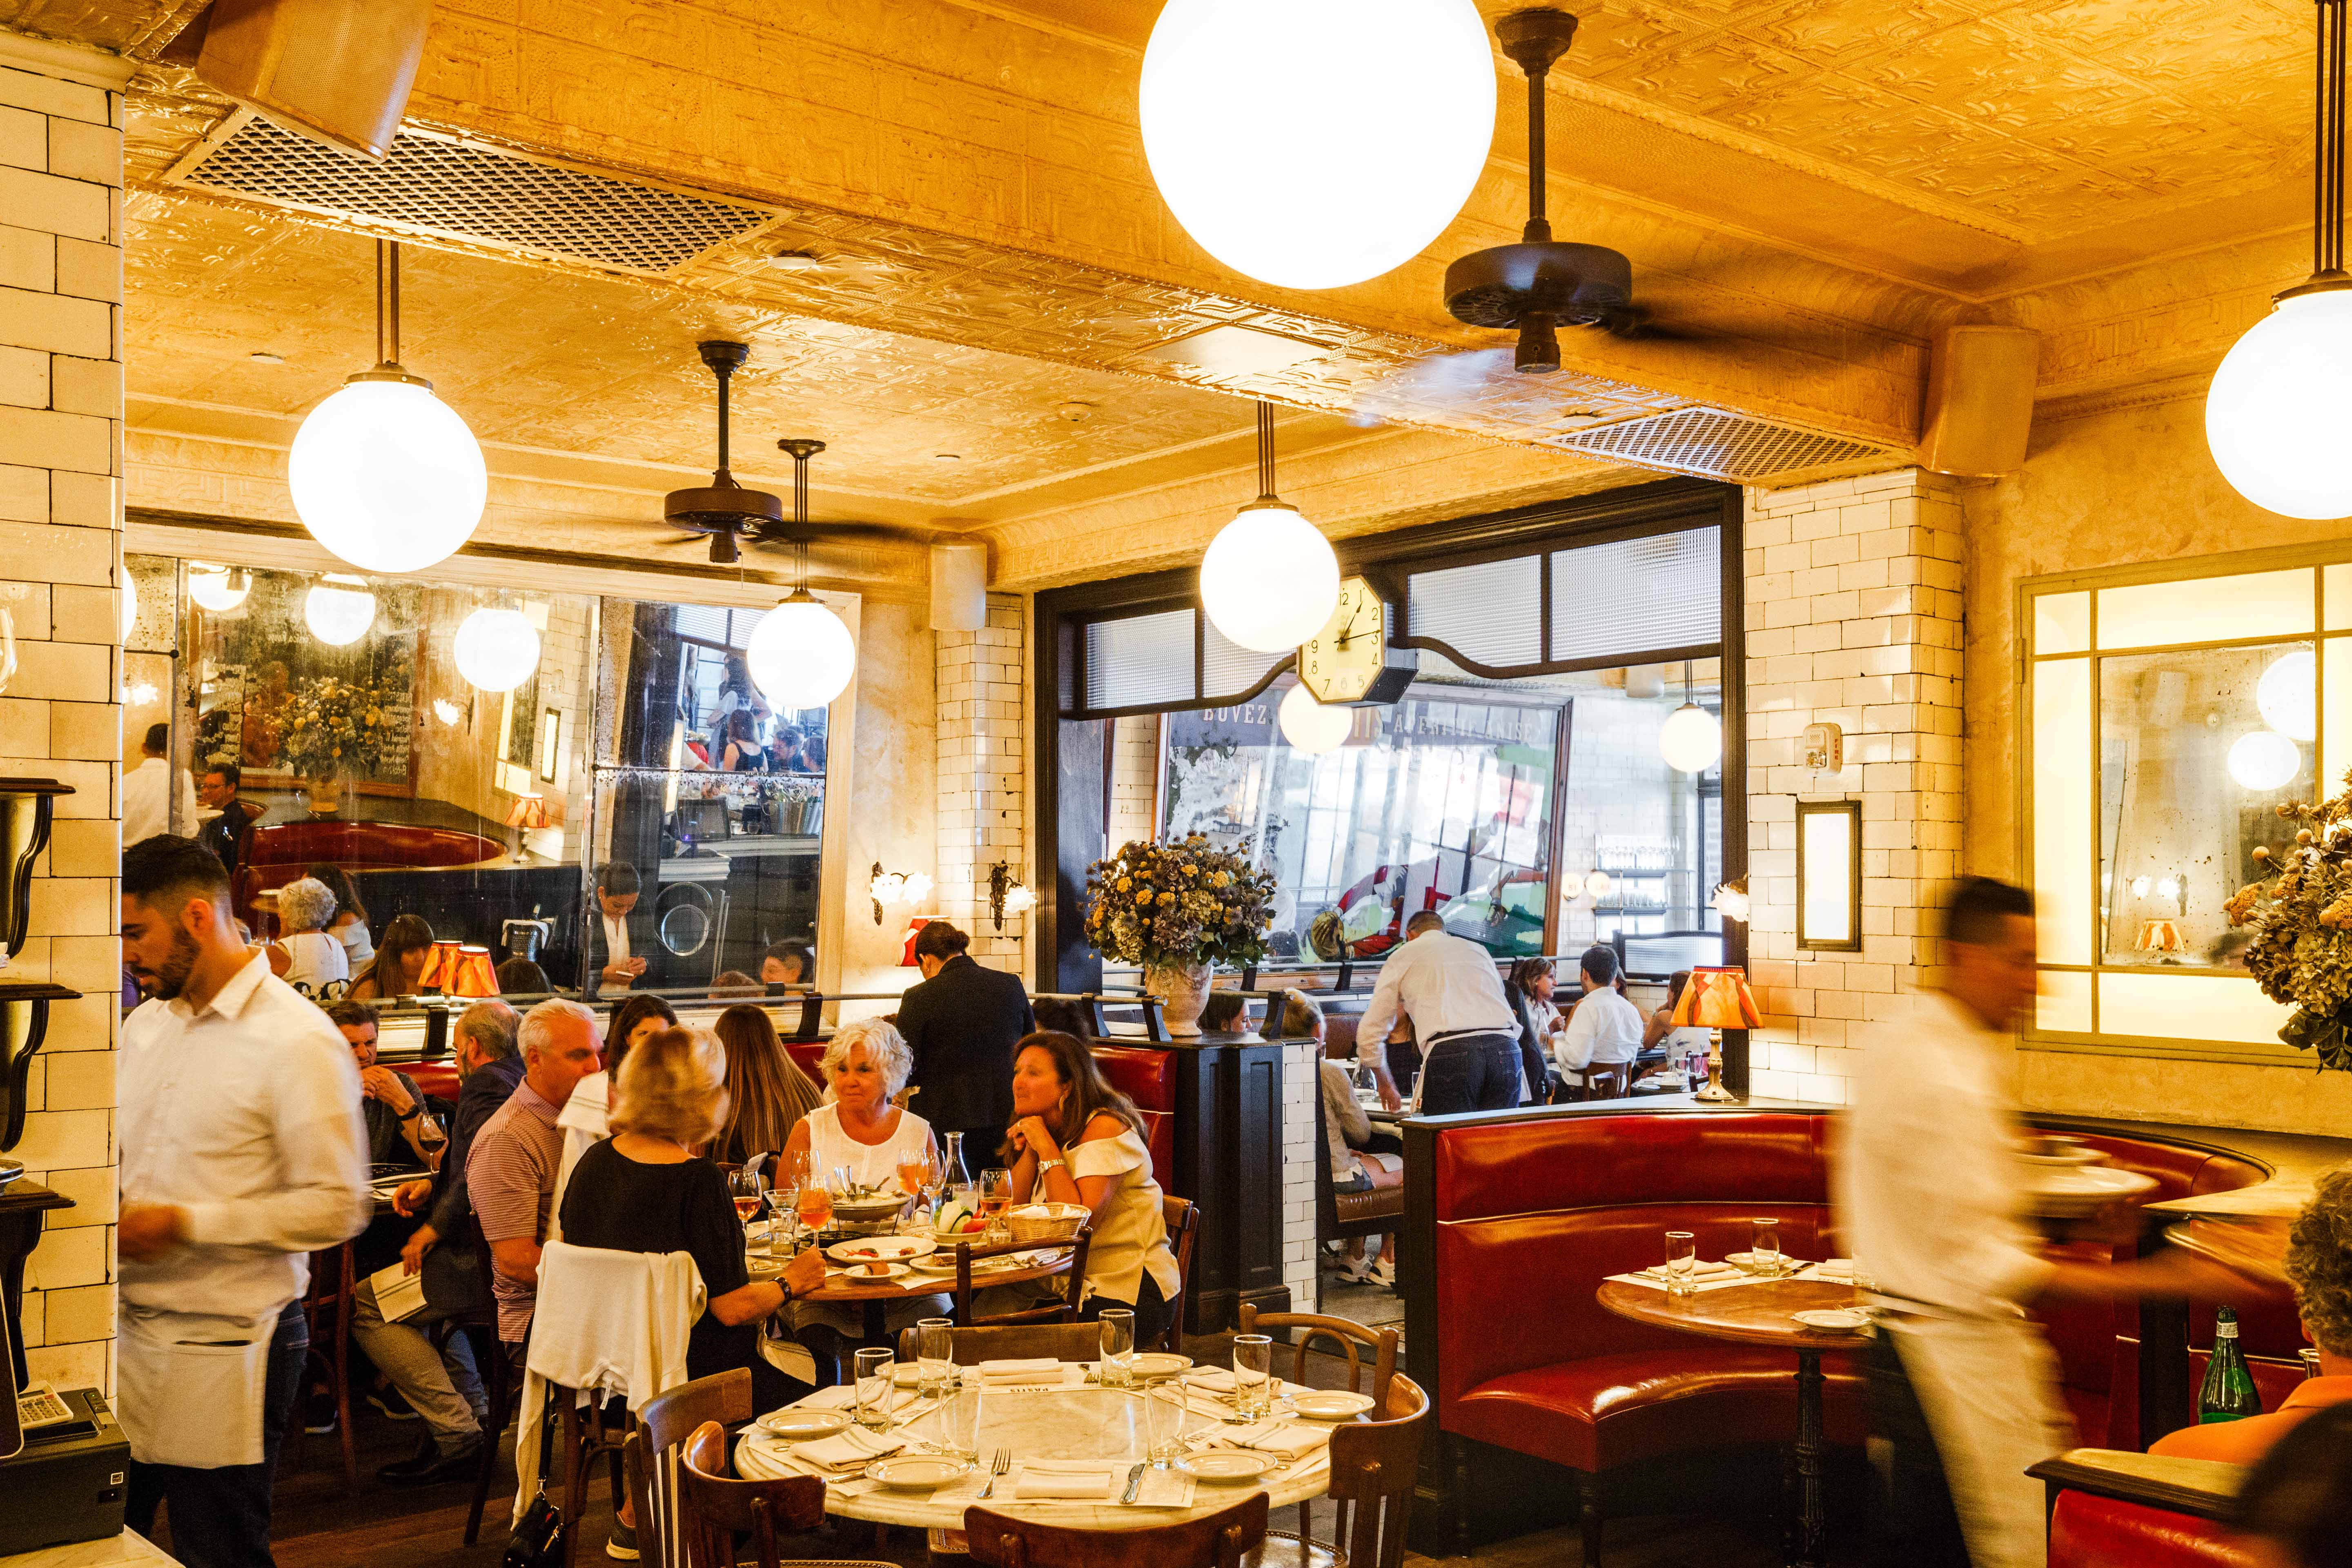 Patrons gather under gold-hued lighting for a meal at Pastis